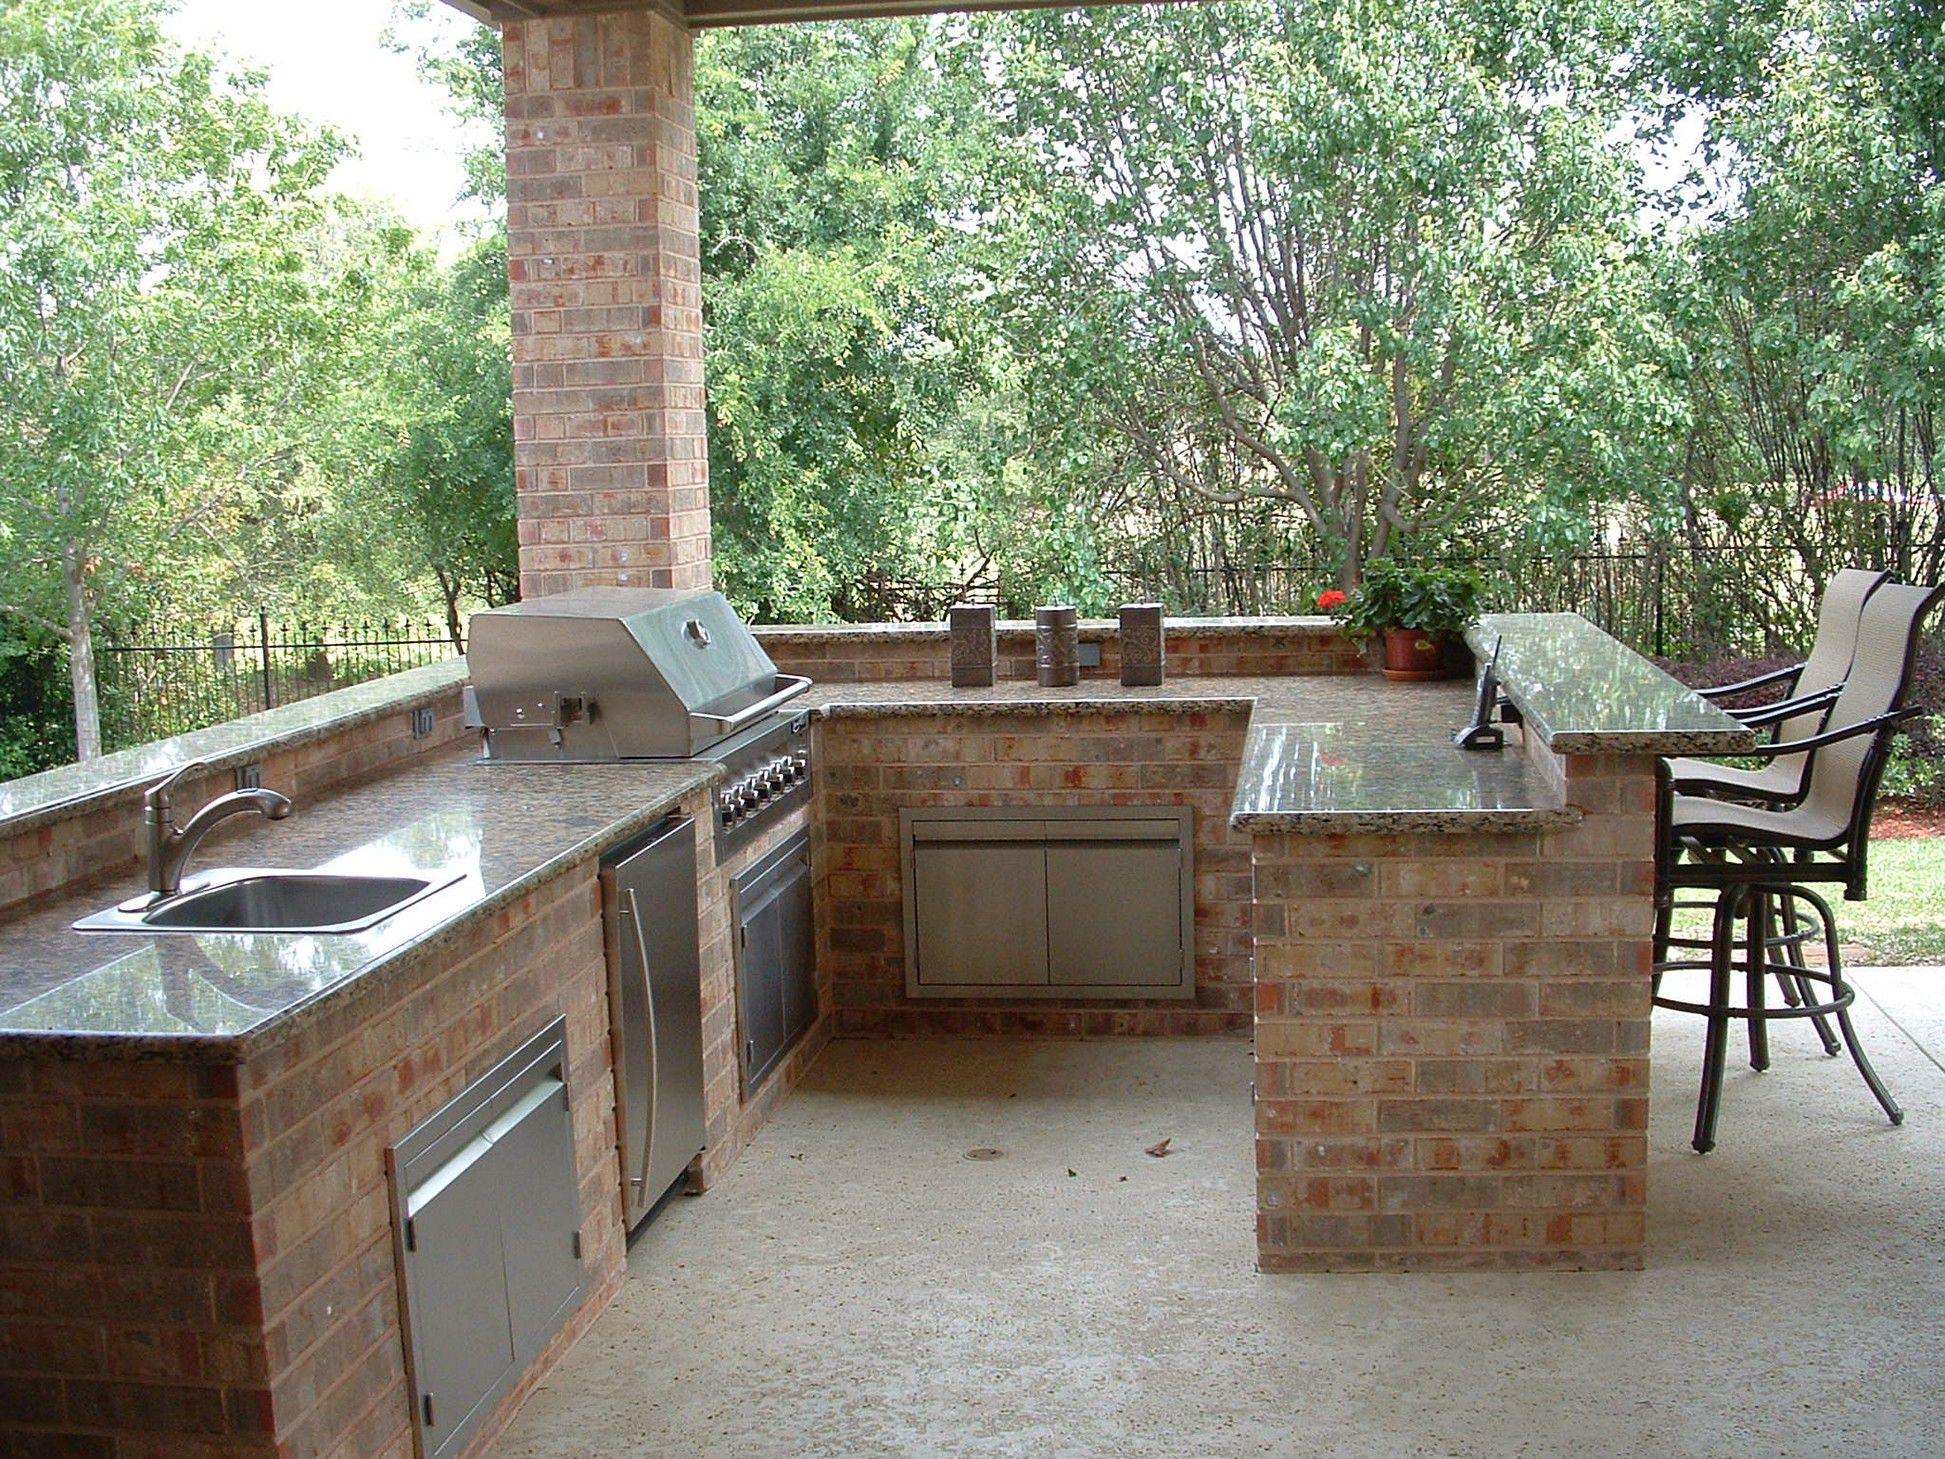 Appealing Design Of The Grey Marble Tops Added With Brown Chairs As The Outdoor Bar Ideas